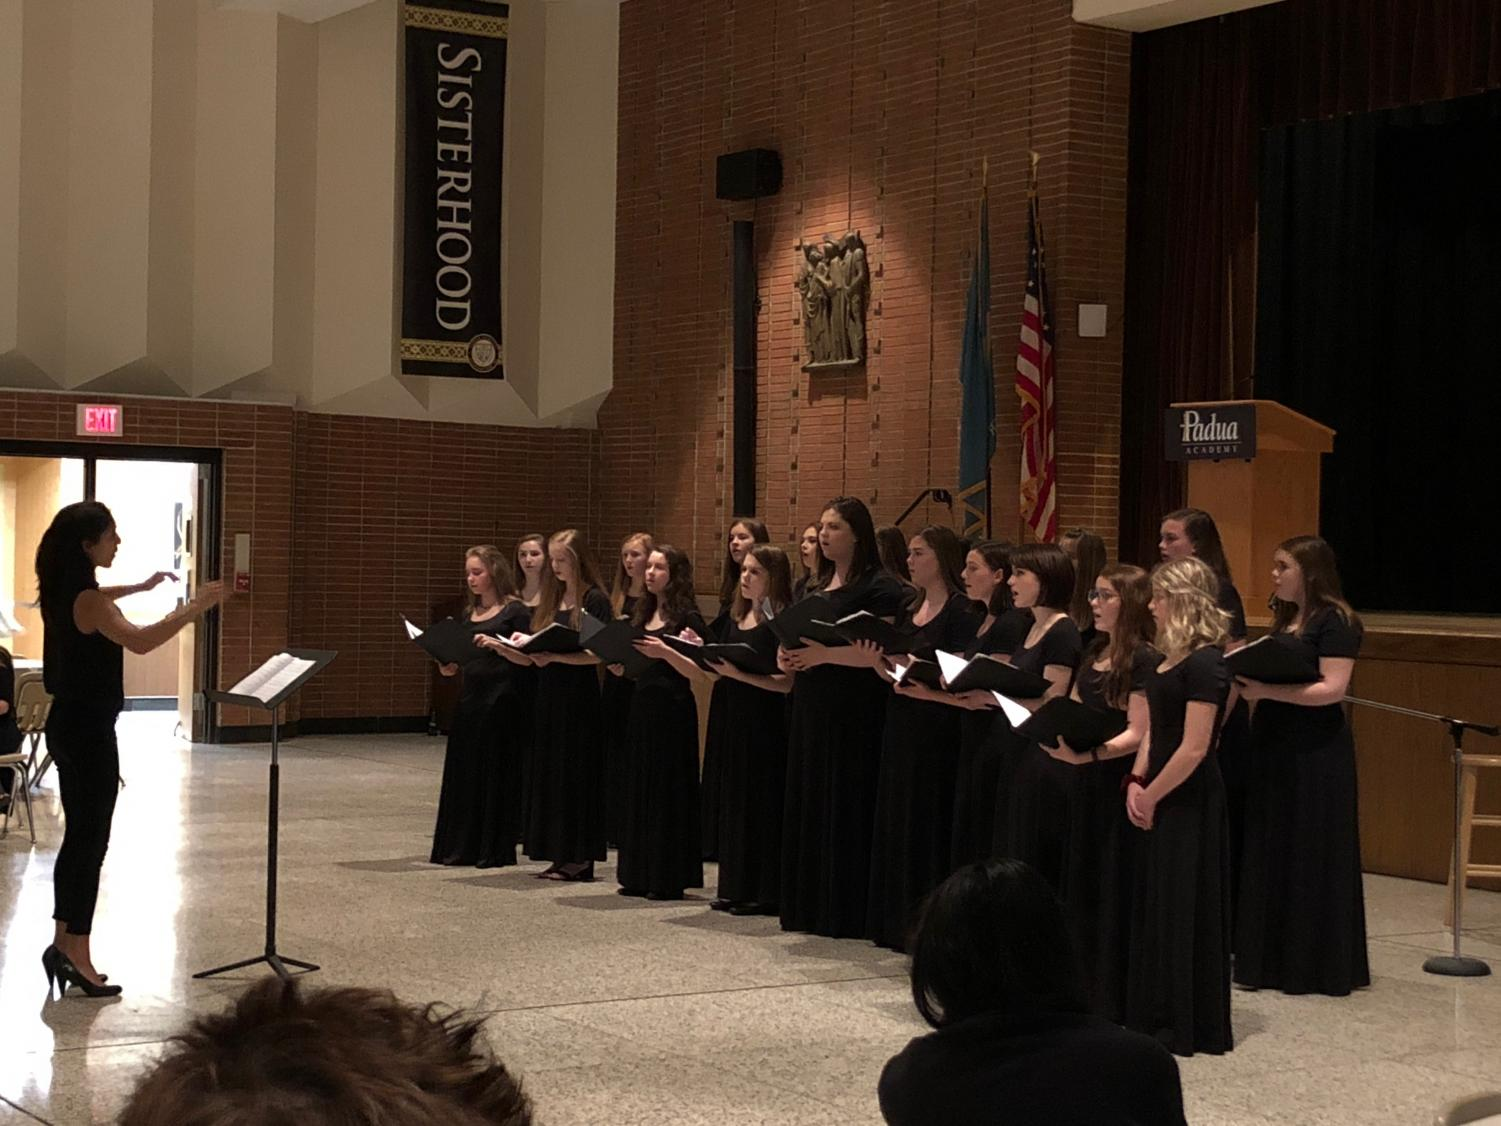 The Padua Women's Chorus performing, directed by Ms. Marion Jacob.